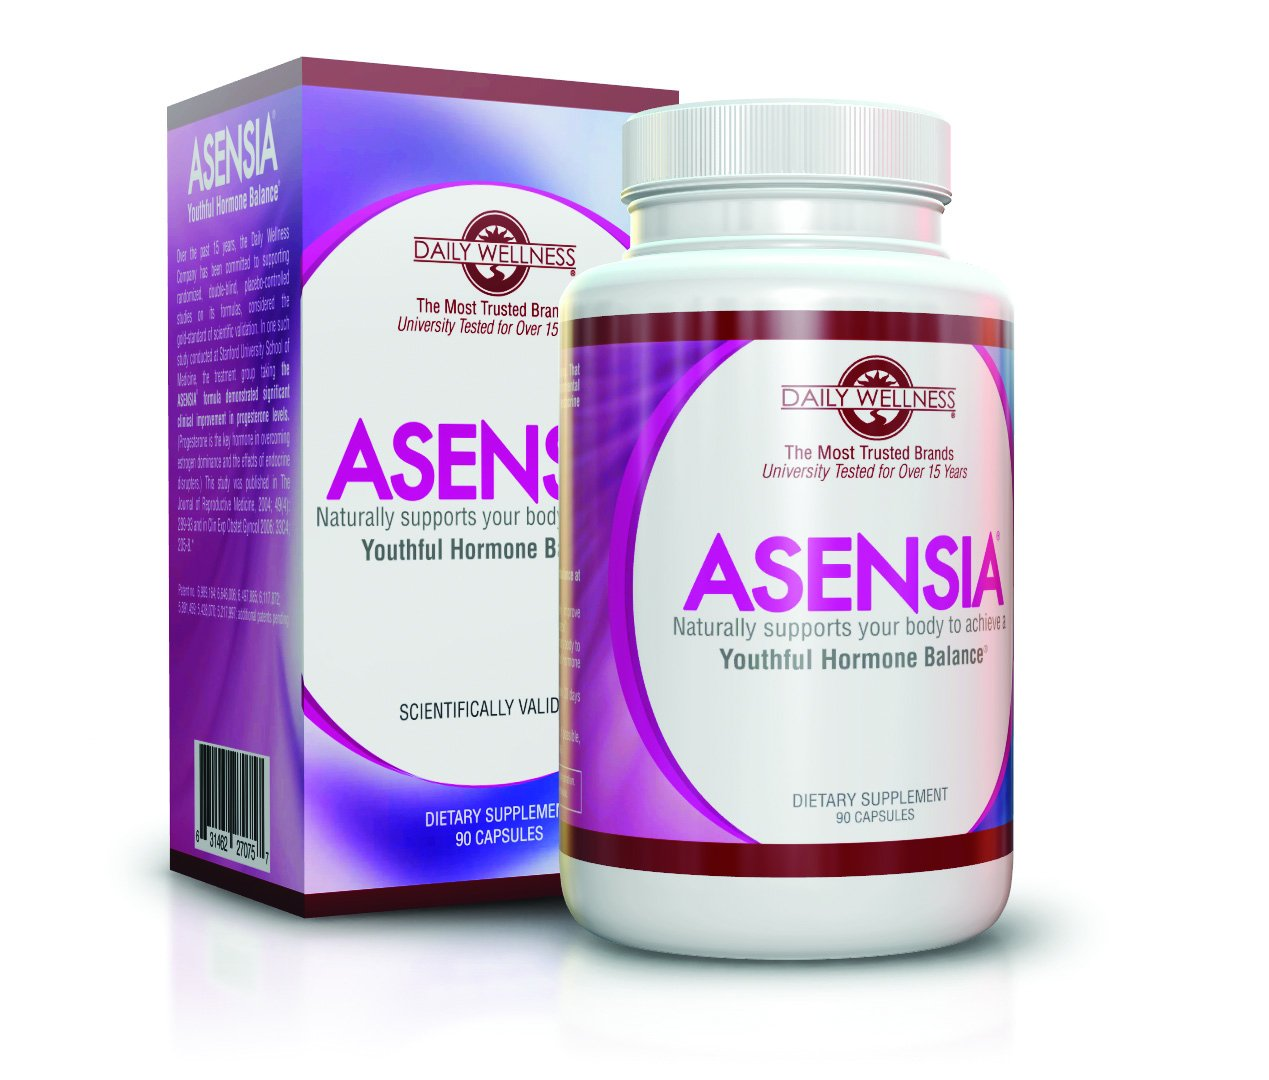 Asensia 3 Pack - Menopause Relief From Insomnia, Bloating, Thyroid Related Weight Gain and Hot Flashes